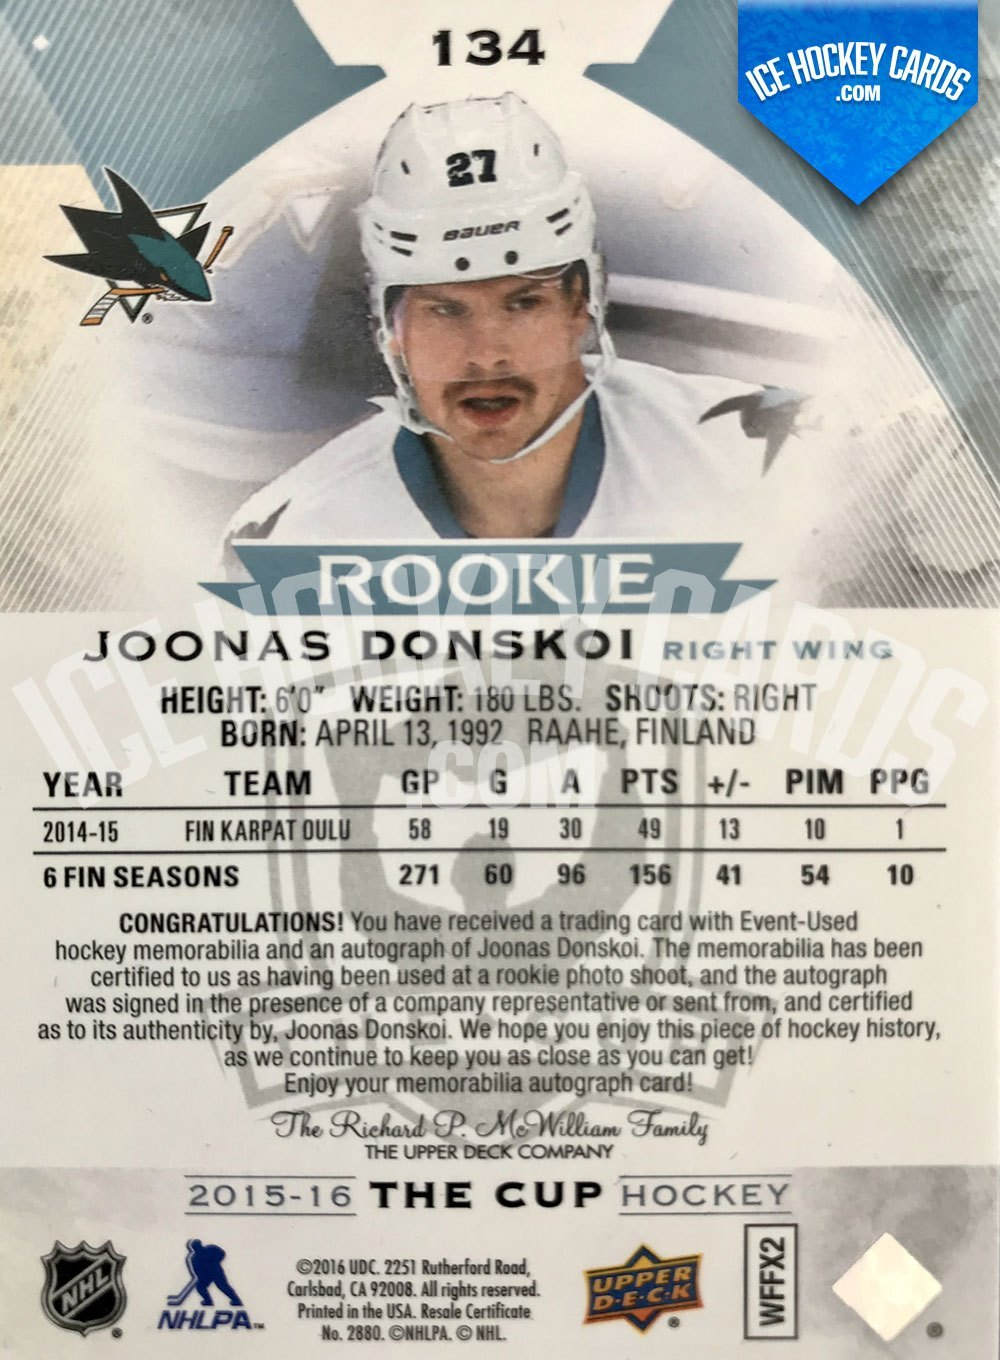 Upper Deck - The Cup 2015-16 - Joonas Donskoi Rookie Auto Patch RC back